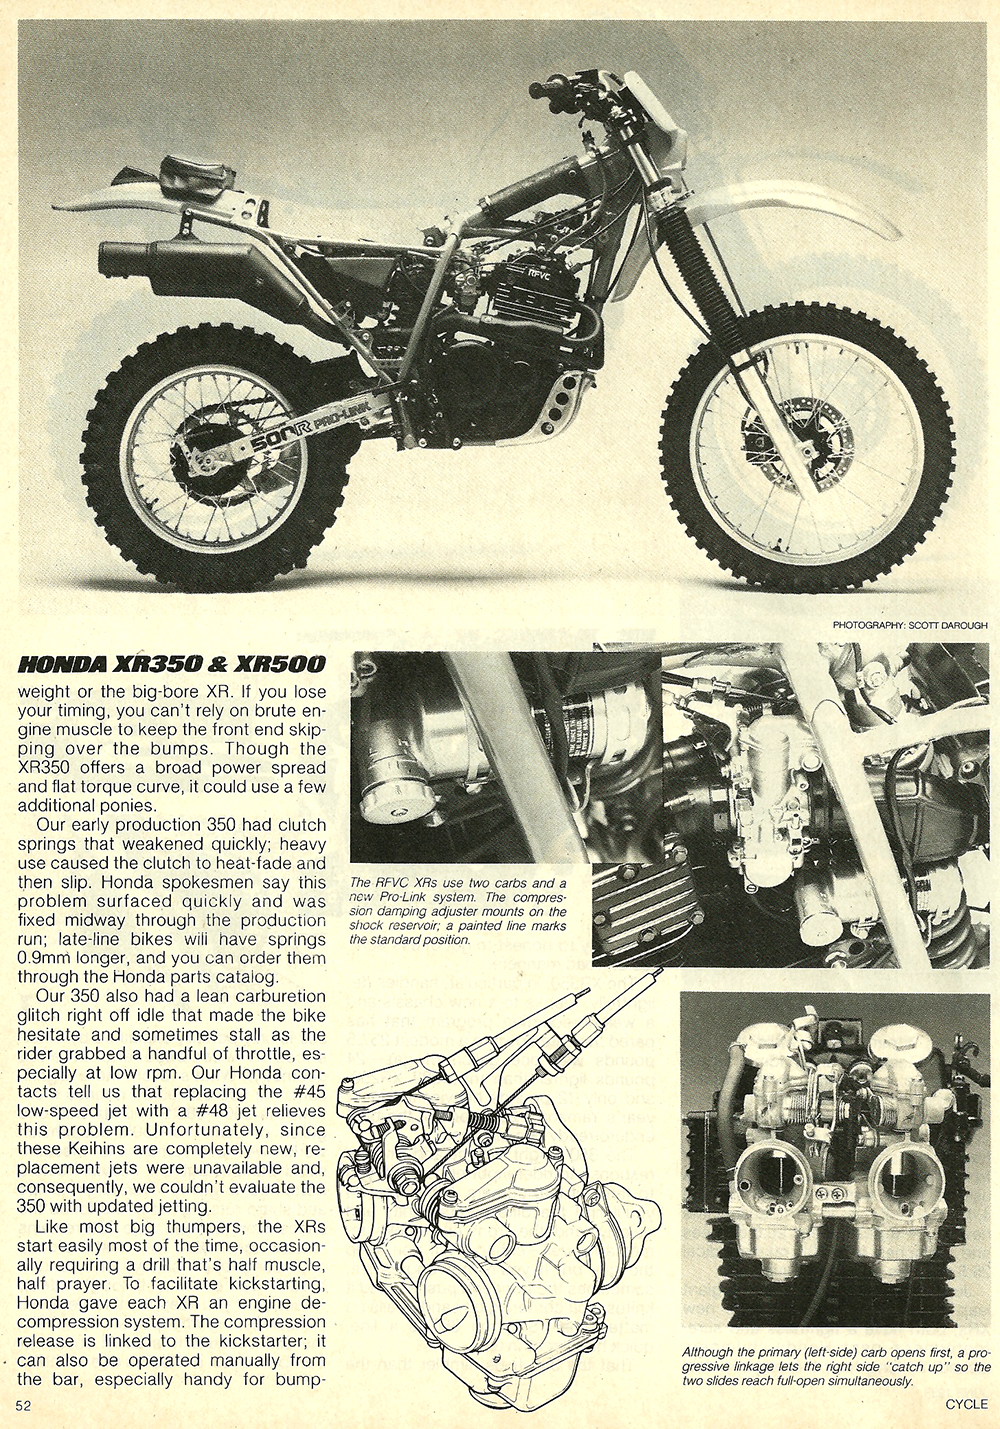 1983 Honda XR350R XR500R road test 5.jpg